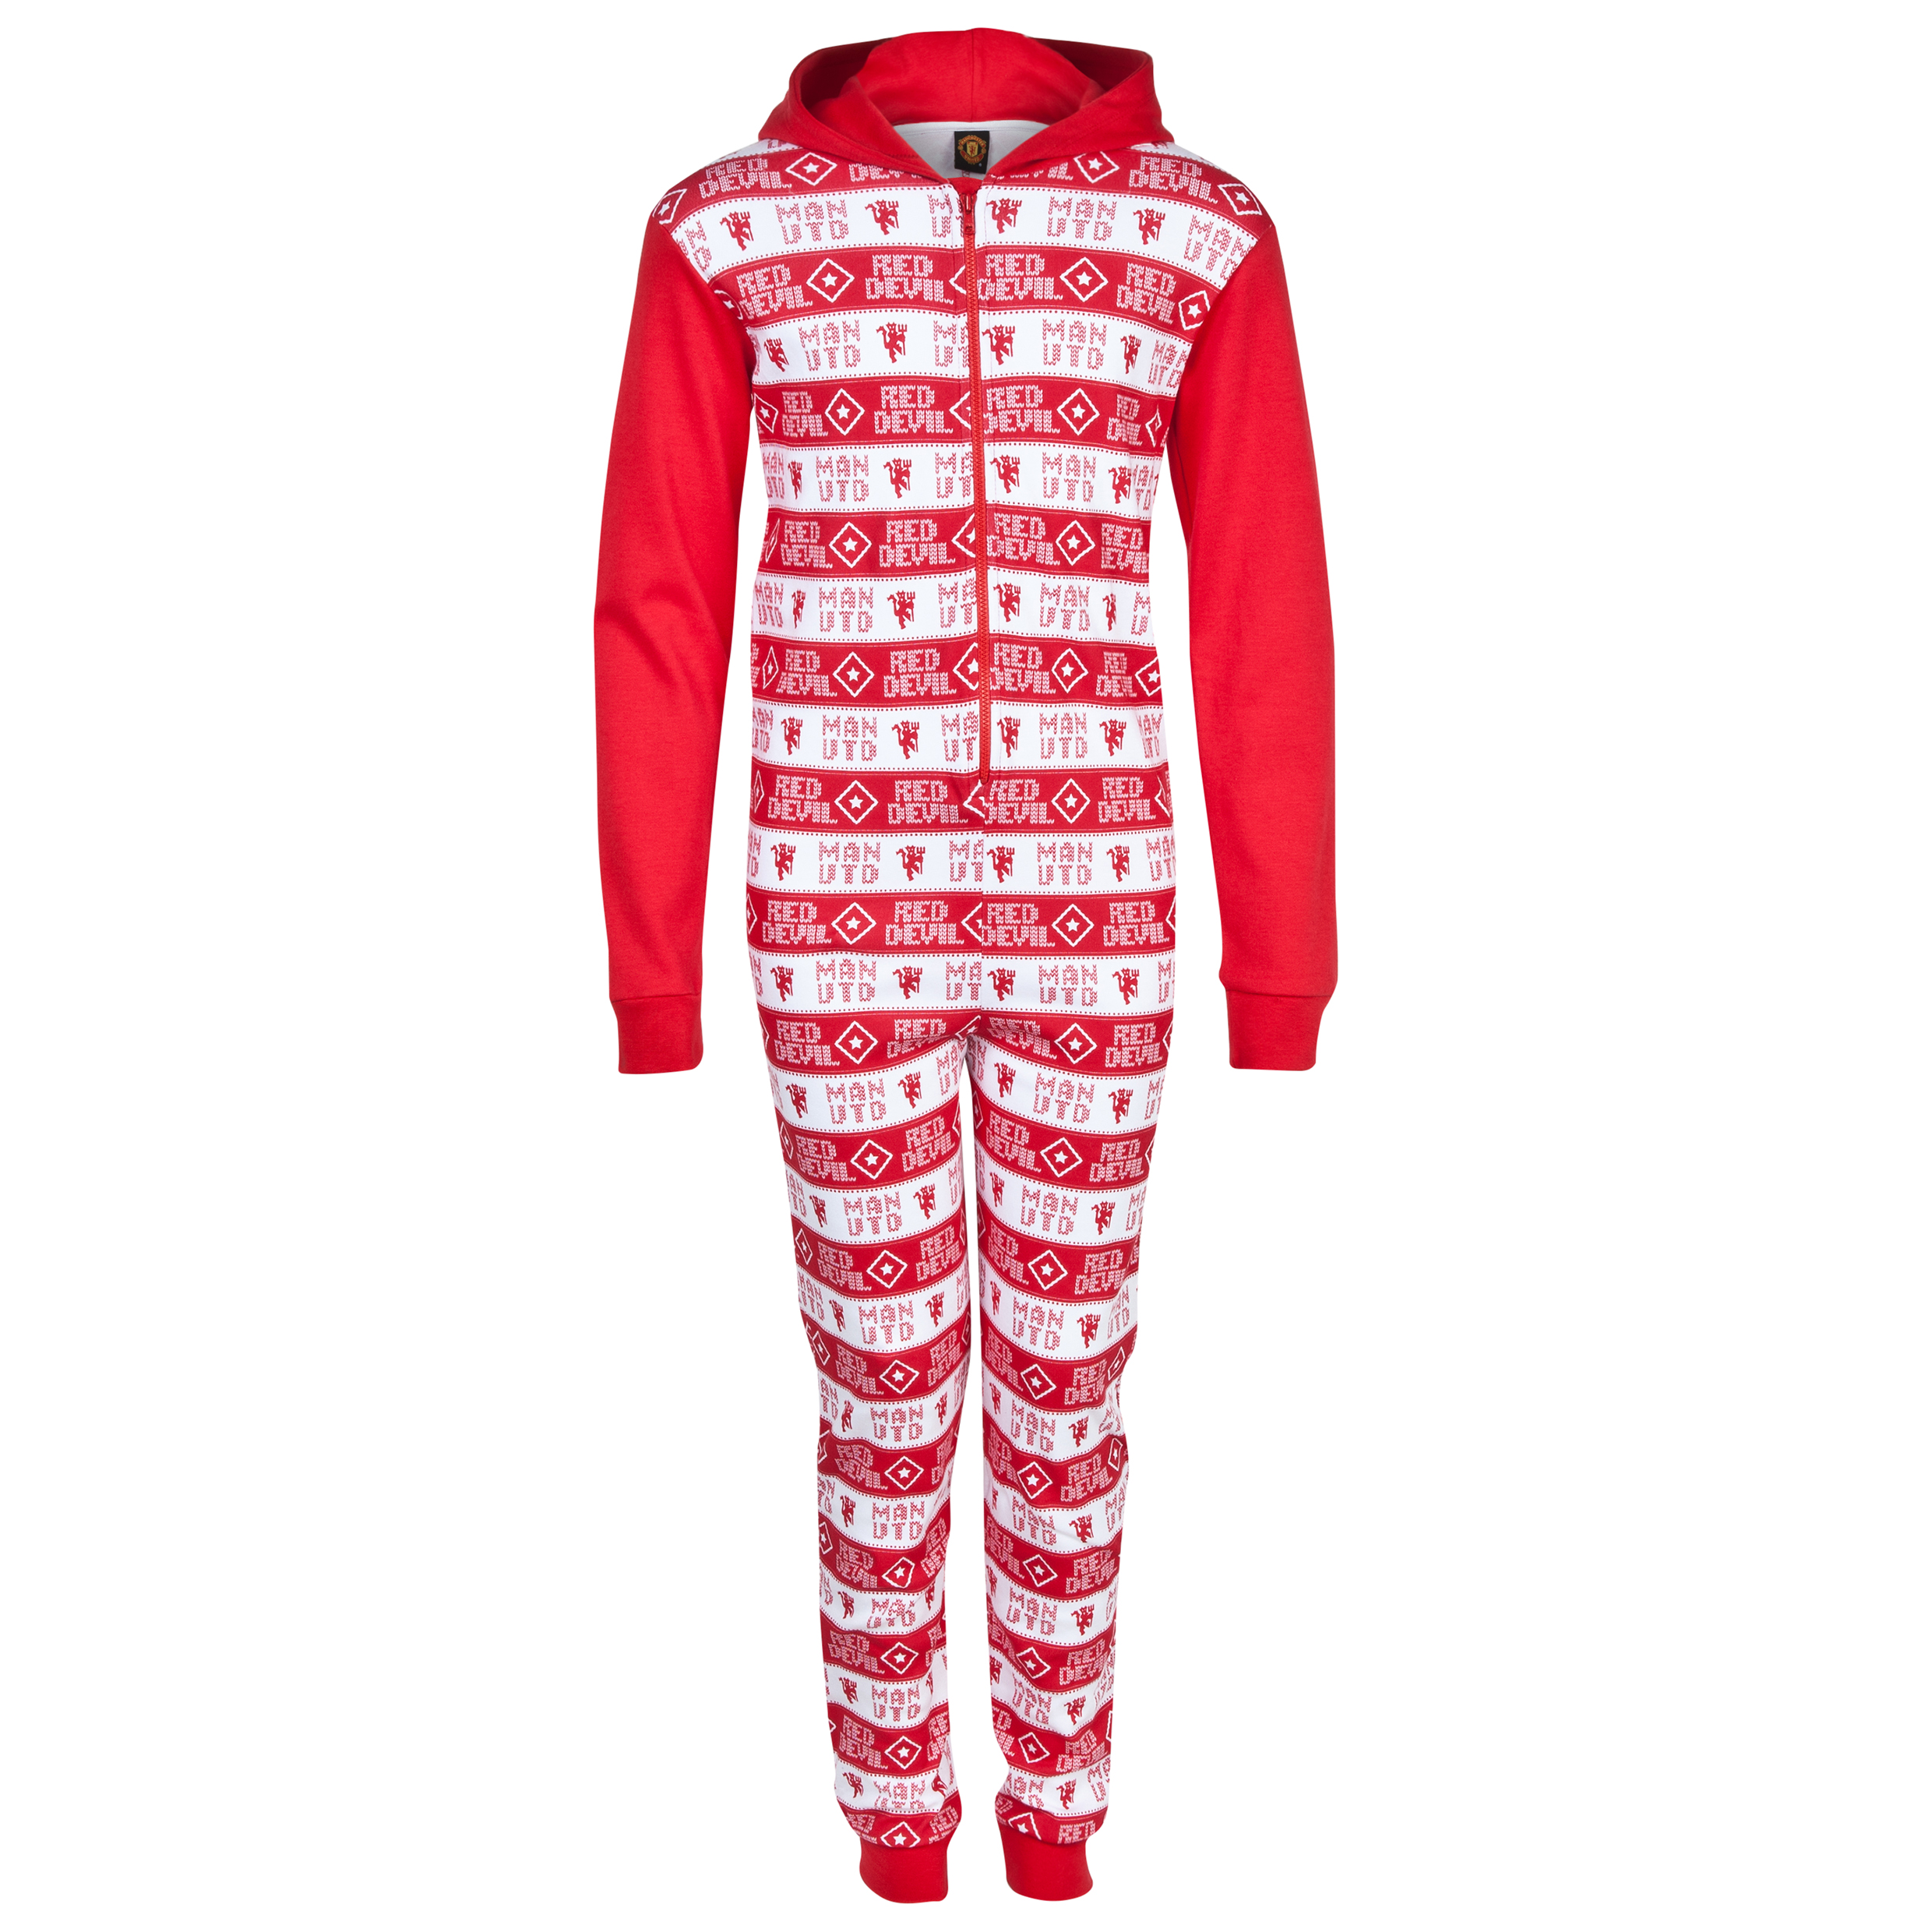 Manchester United Red Devil Onesie - Unisex